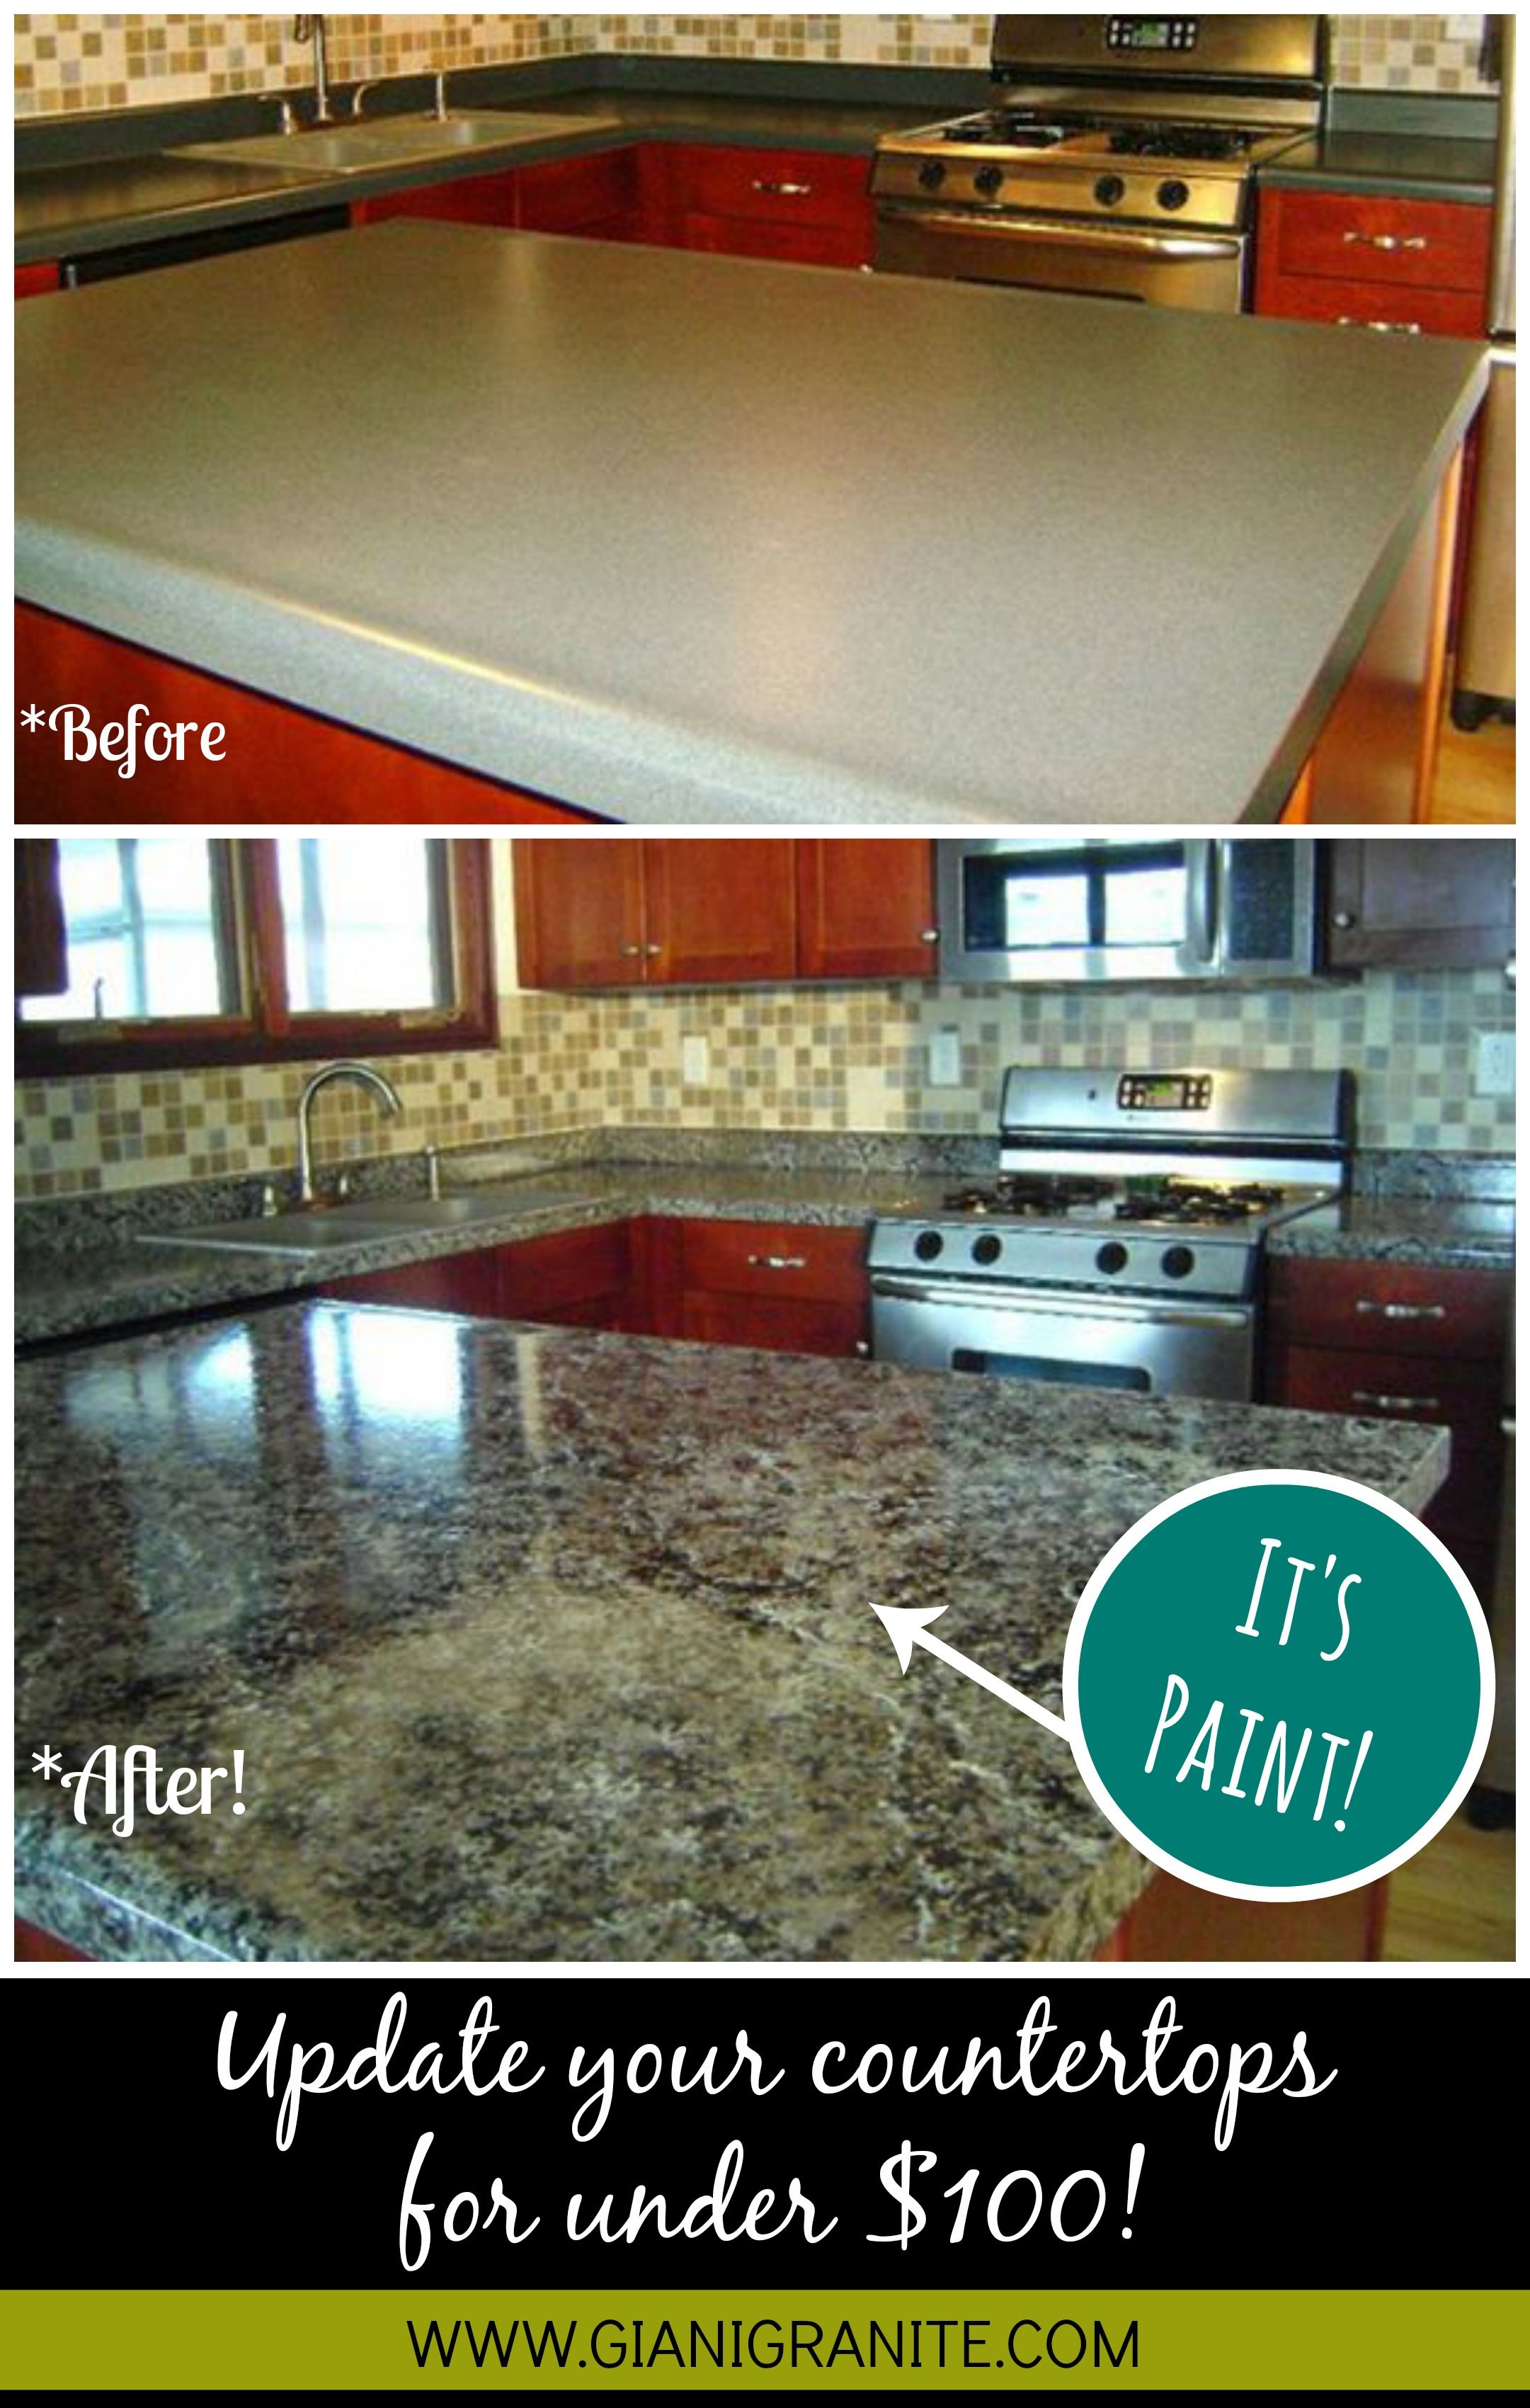 Affordable Countertop Makeover Paint That Looks Like Granite Diy Www Gianigranite Com Countertop Paint Kitchen Diy Makeover Home Countertop Makeover